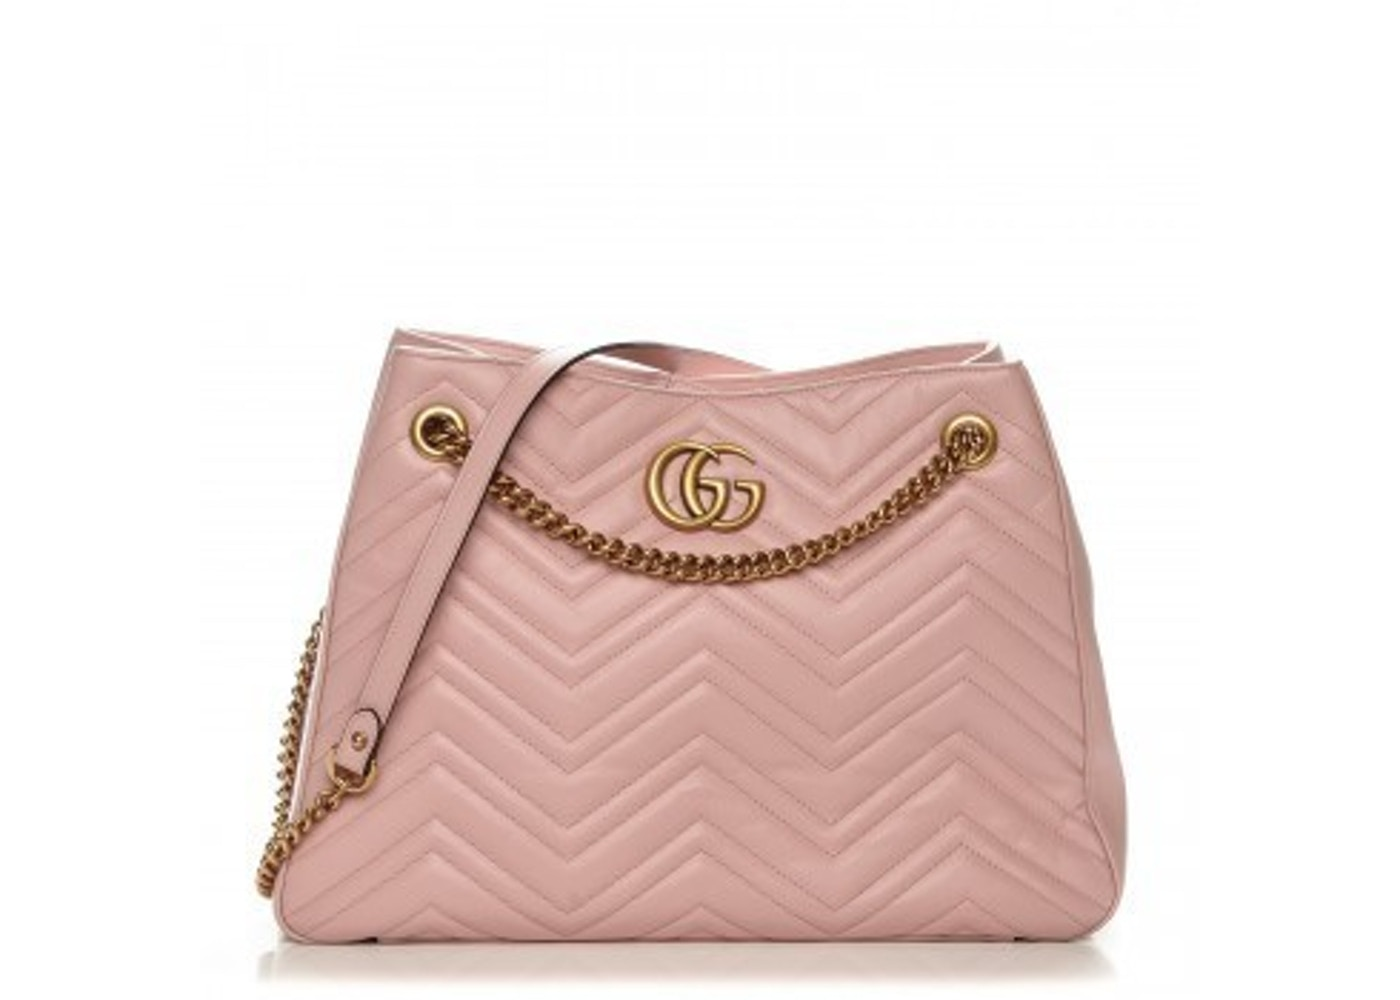 8d40e8b44857 Gg Marmont Medium Matelassé Shoulder Bag Price Singapore | Stanford ...